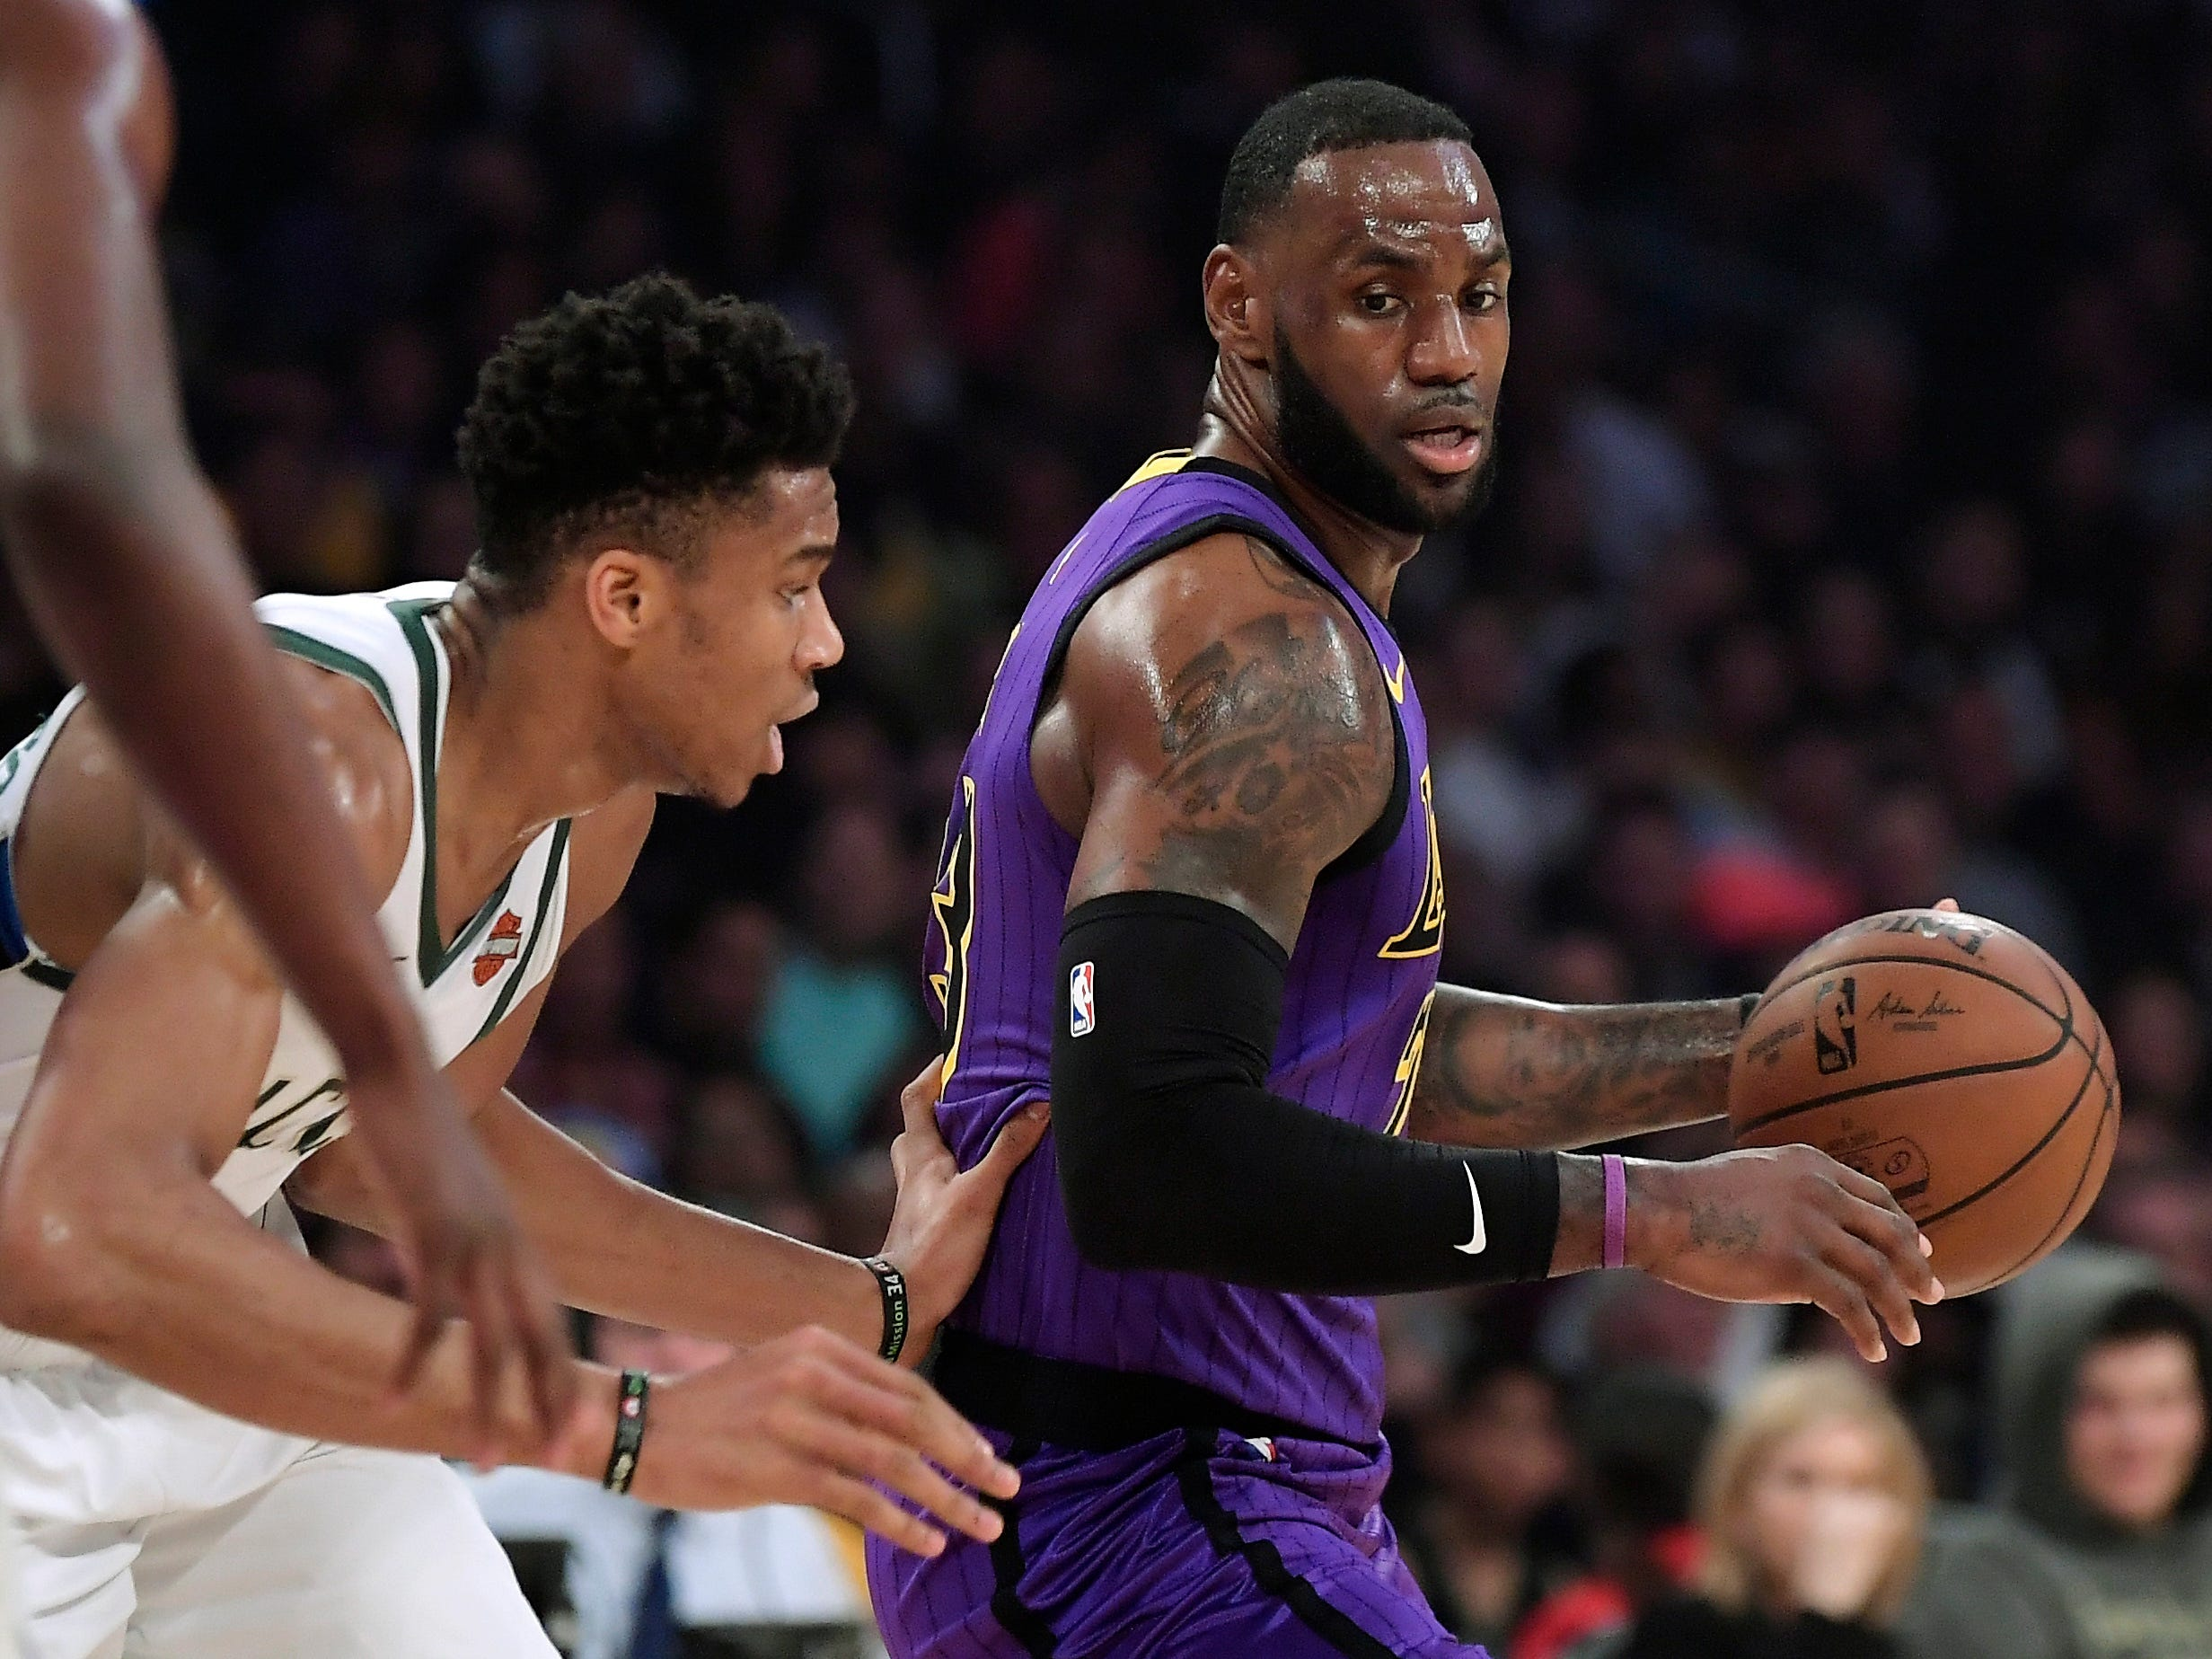 Bucks forward Giannis Antetokounmpo gets ready for Lakers forward LeBron James to make his move during the first half.